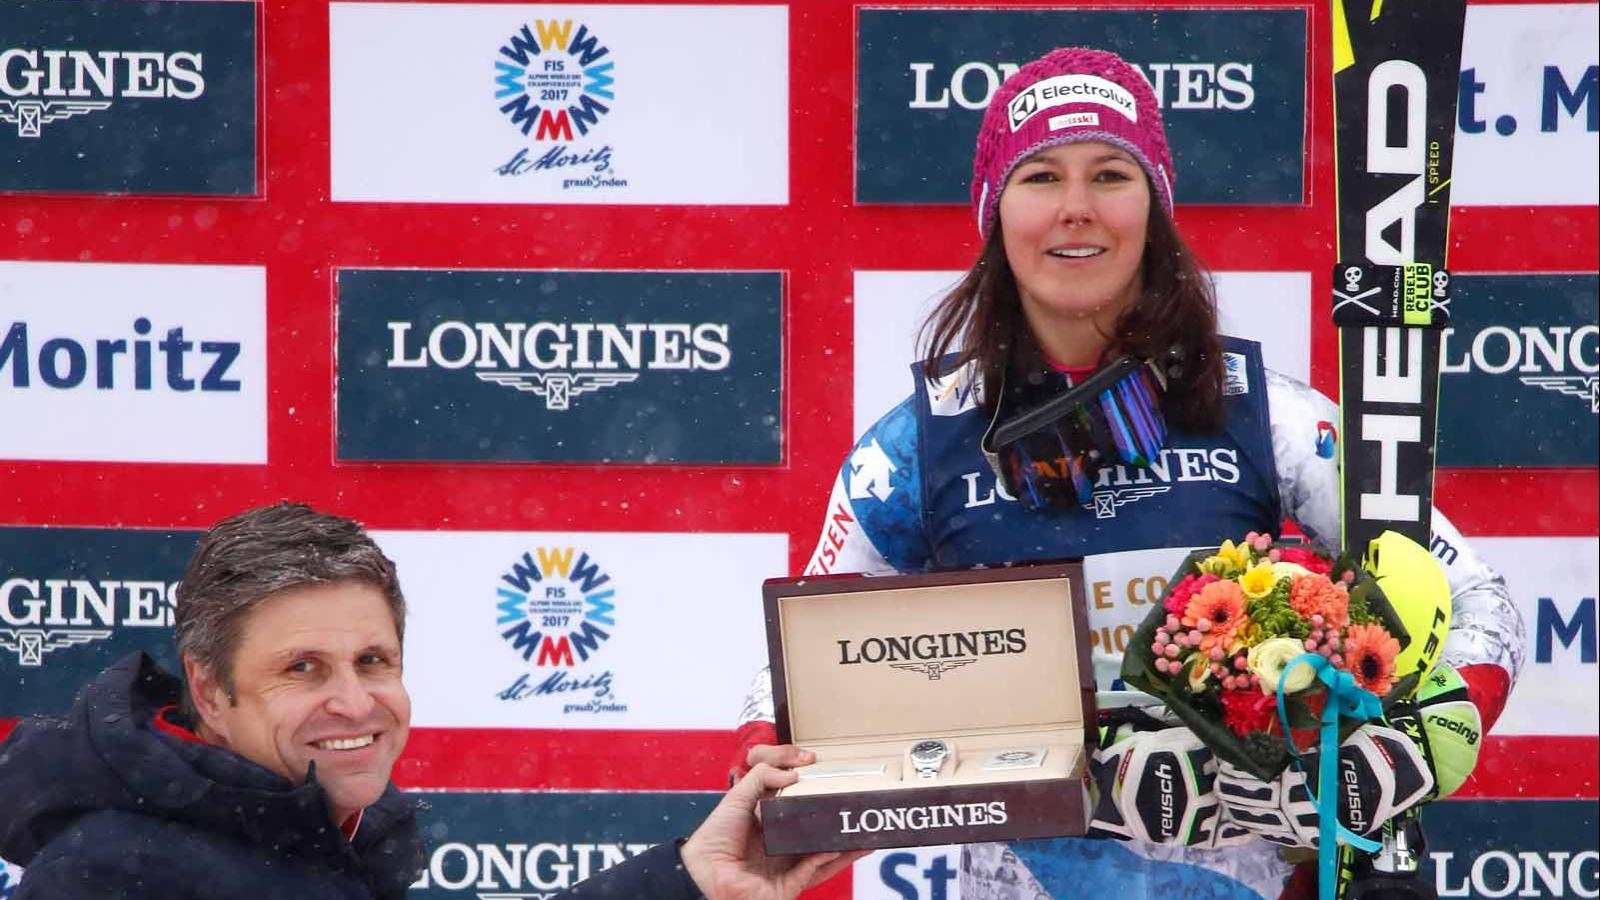 the FIS Alpine World Ski Championships St. Moritz 2017; the Conquest Classic collection; Alpine Skiing; 2017